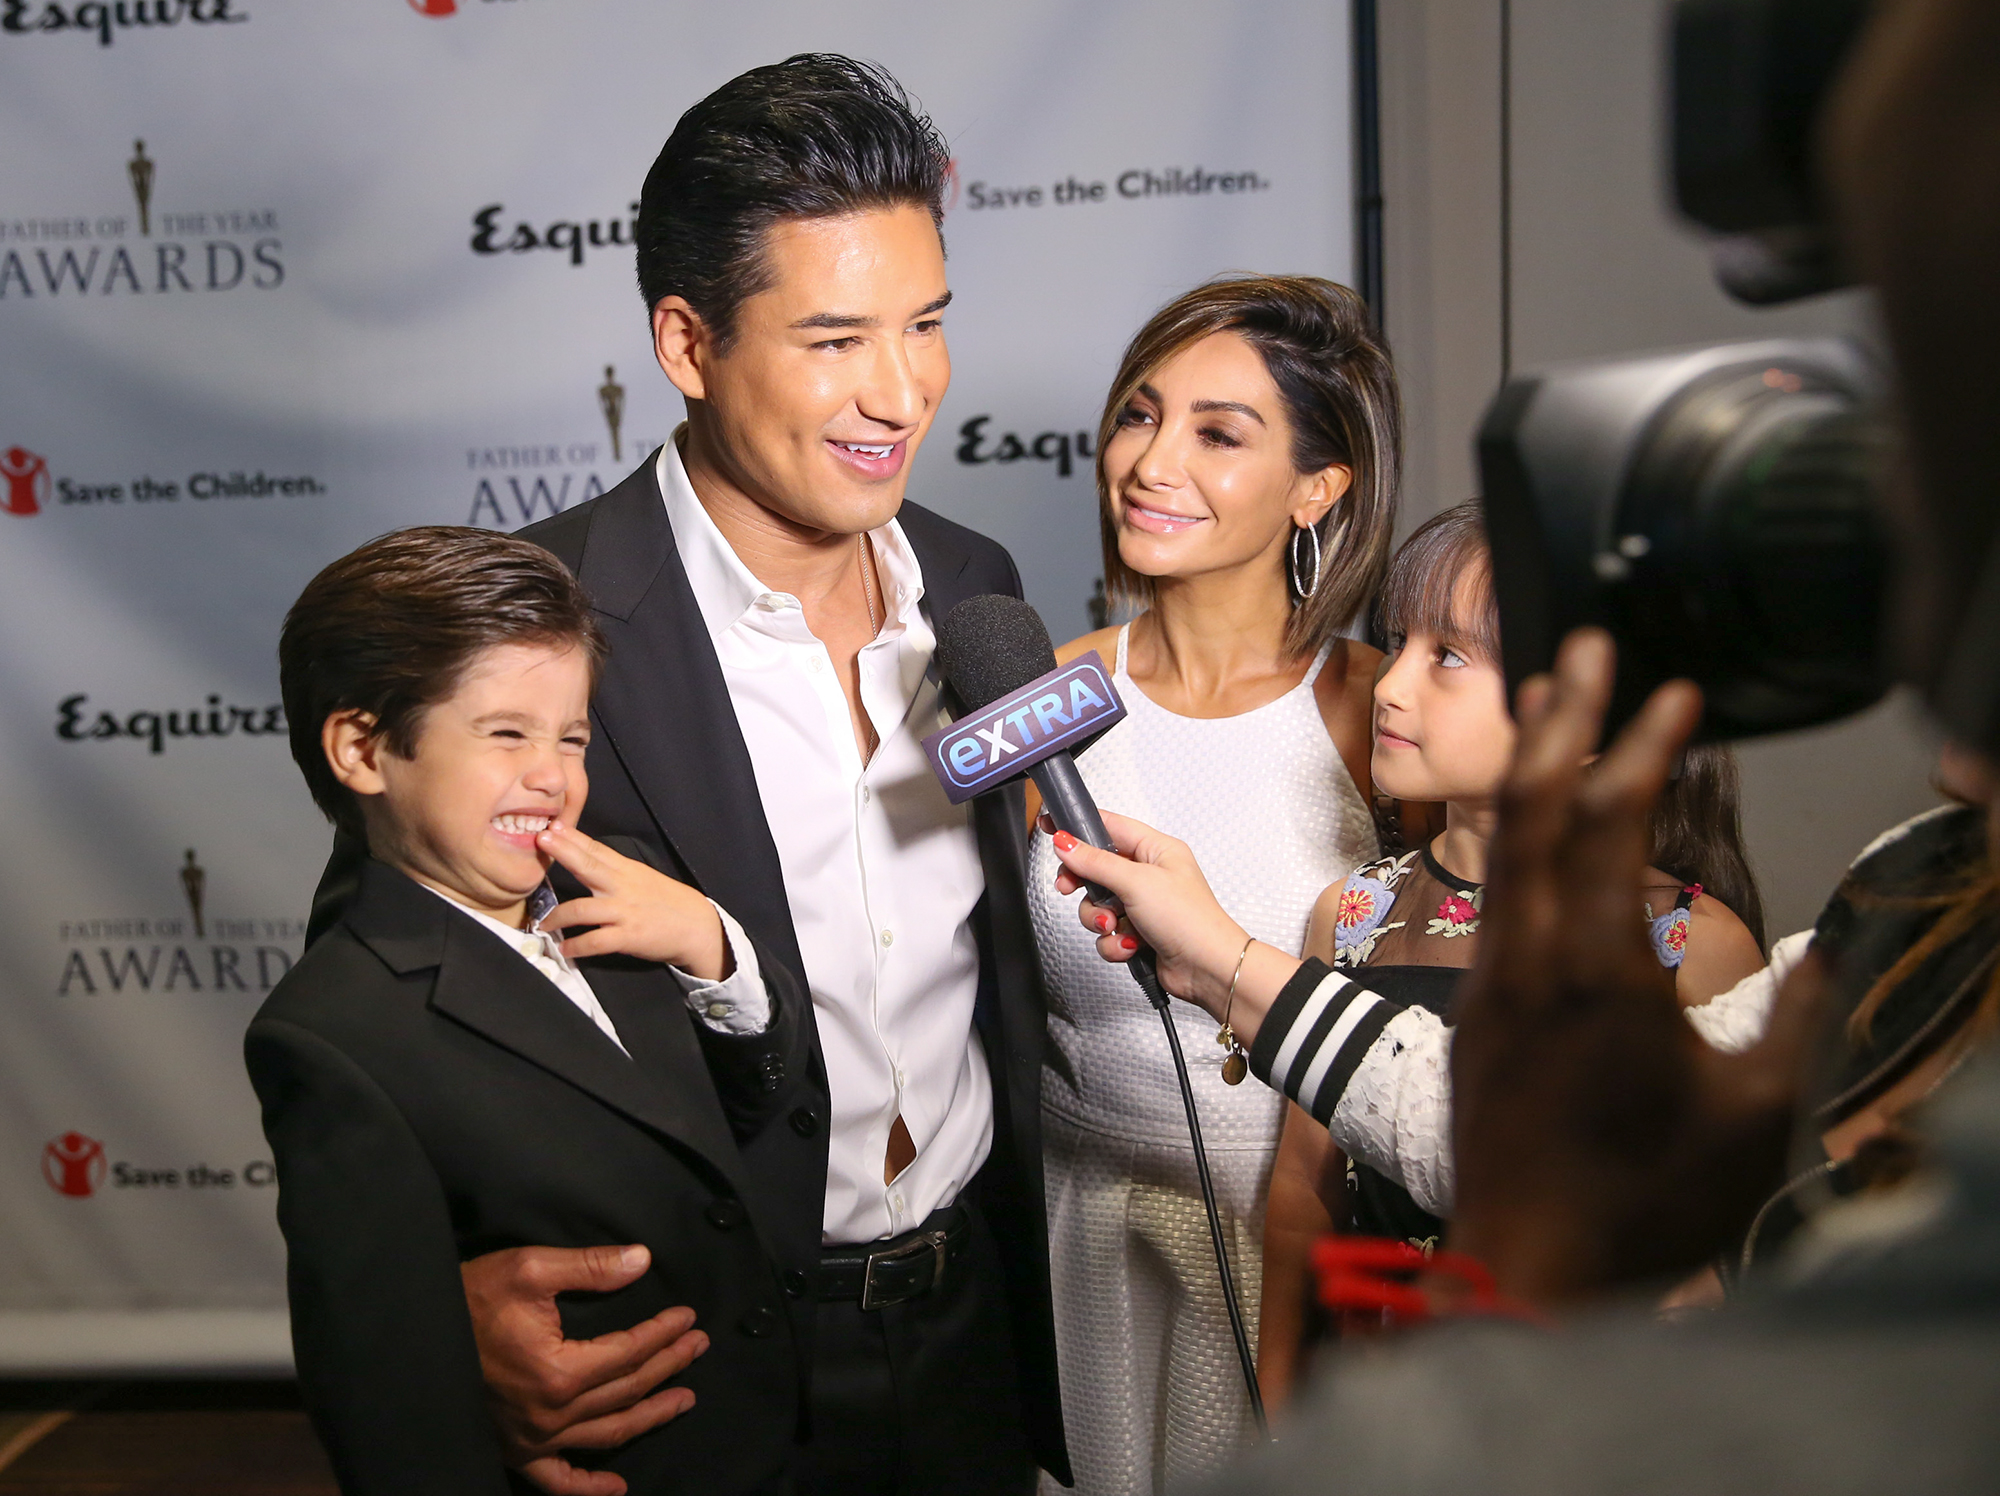 77th Annual Father Of The Year Awards